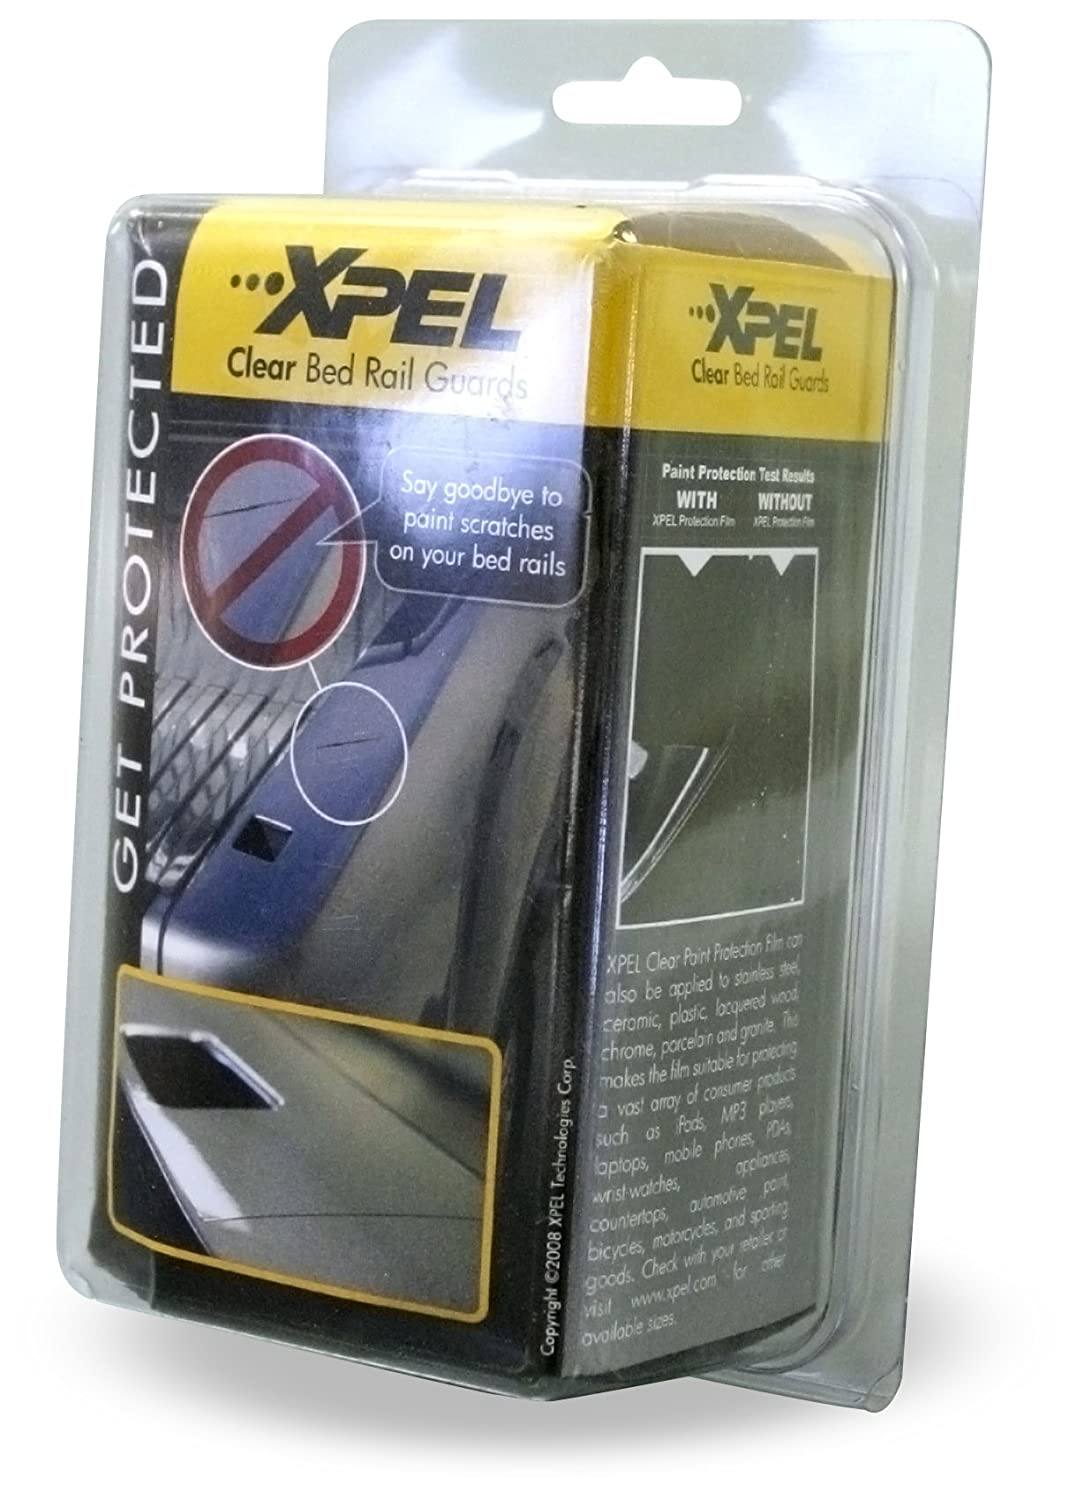 XPEL Clear Universal Bed Rail Guard Paint Protection Film Kit 17 x 4